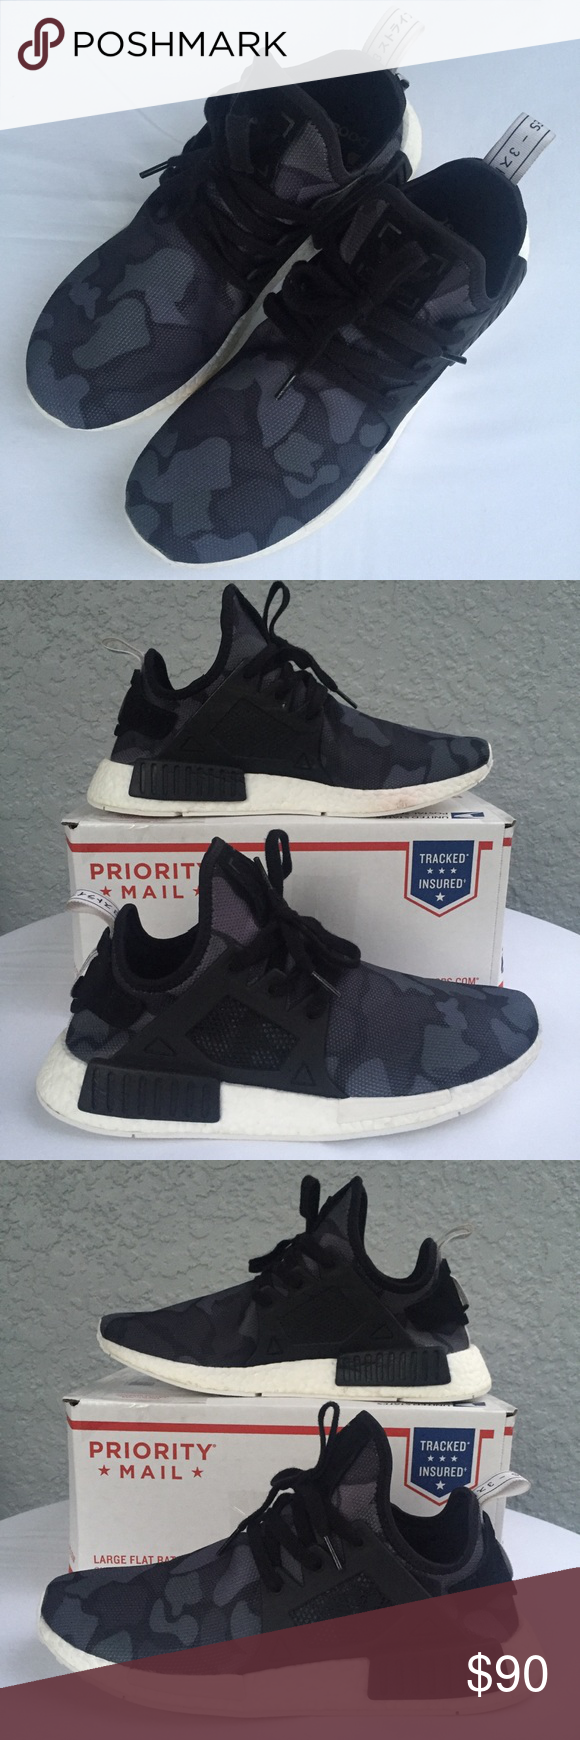 f823e9bcada89 Adidas NMD XR1 Duck Camo This XR1 takes the essential NMD runner to the next  level with in a trail-ready colorway. Duck camo pattern on the all-black ...